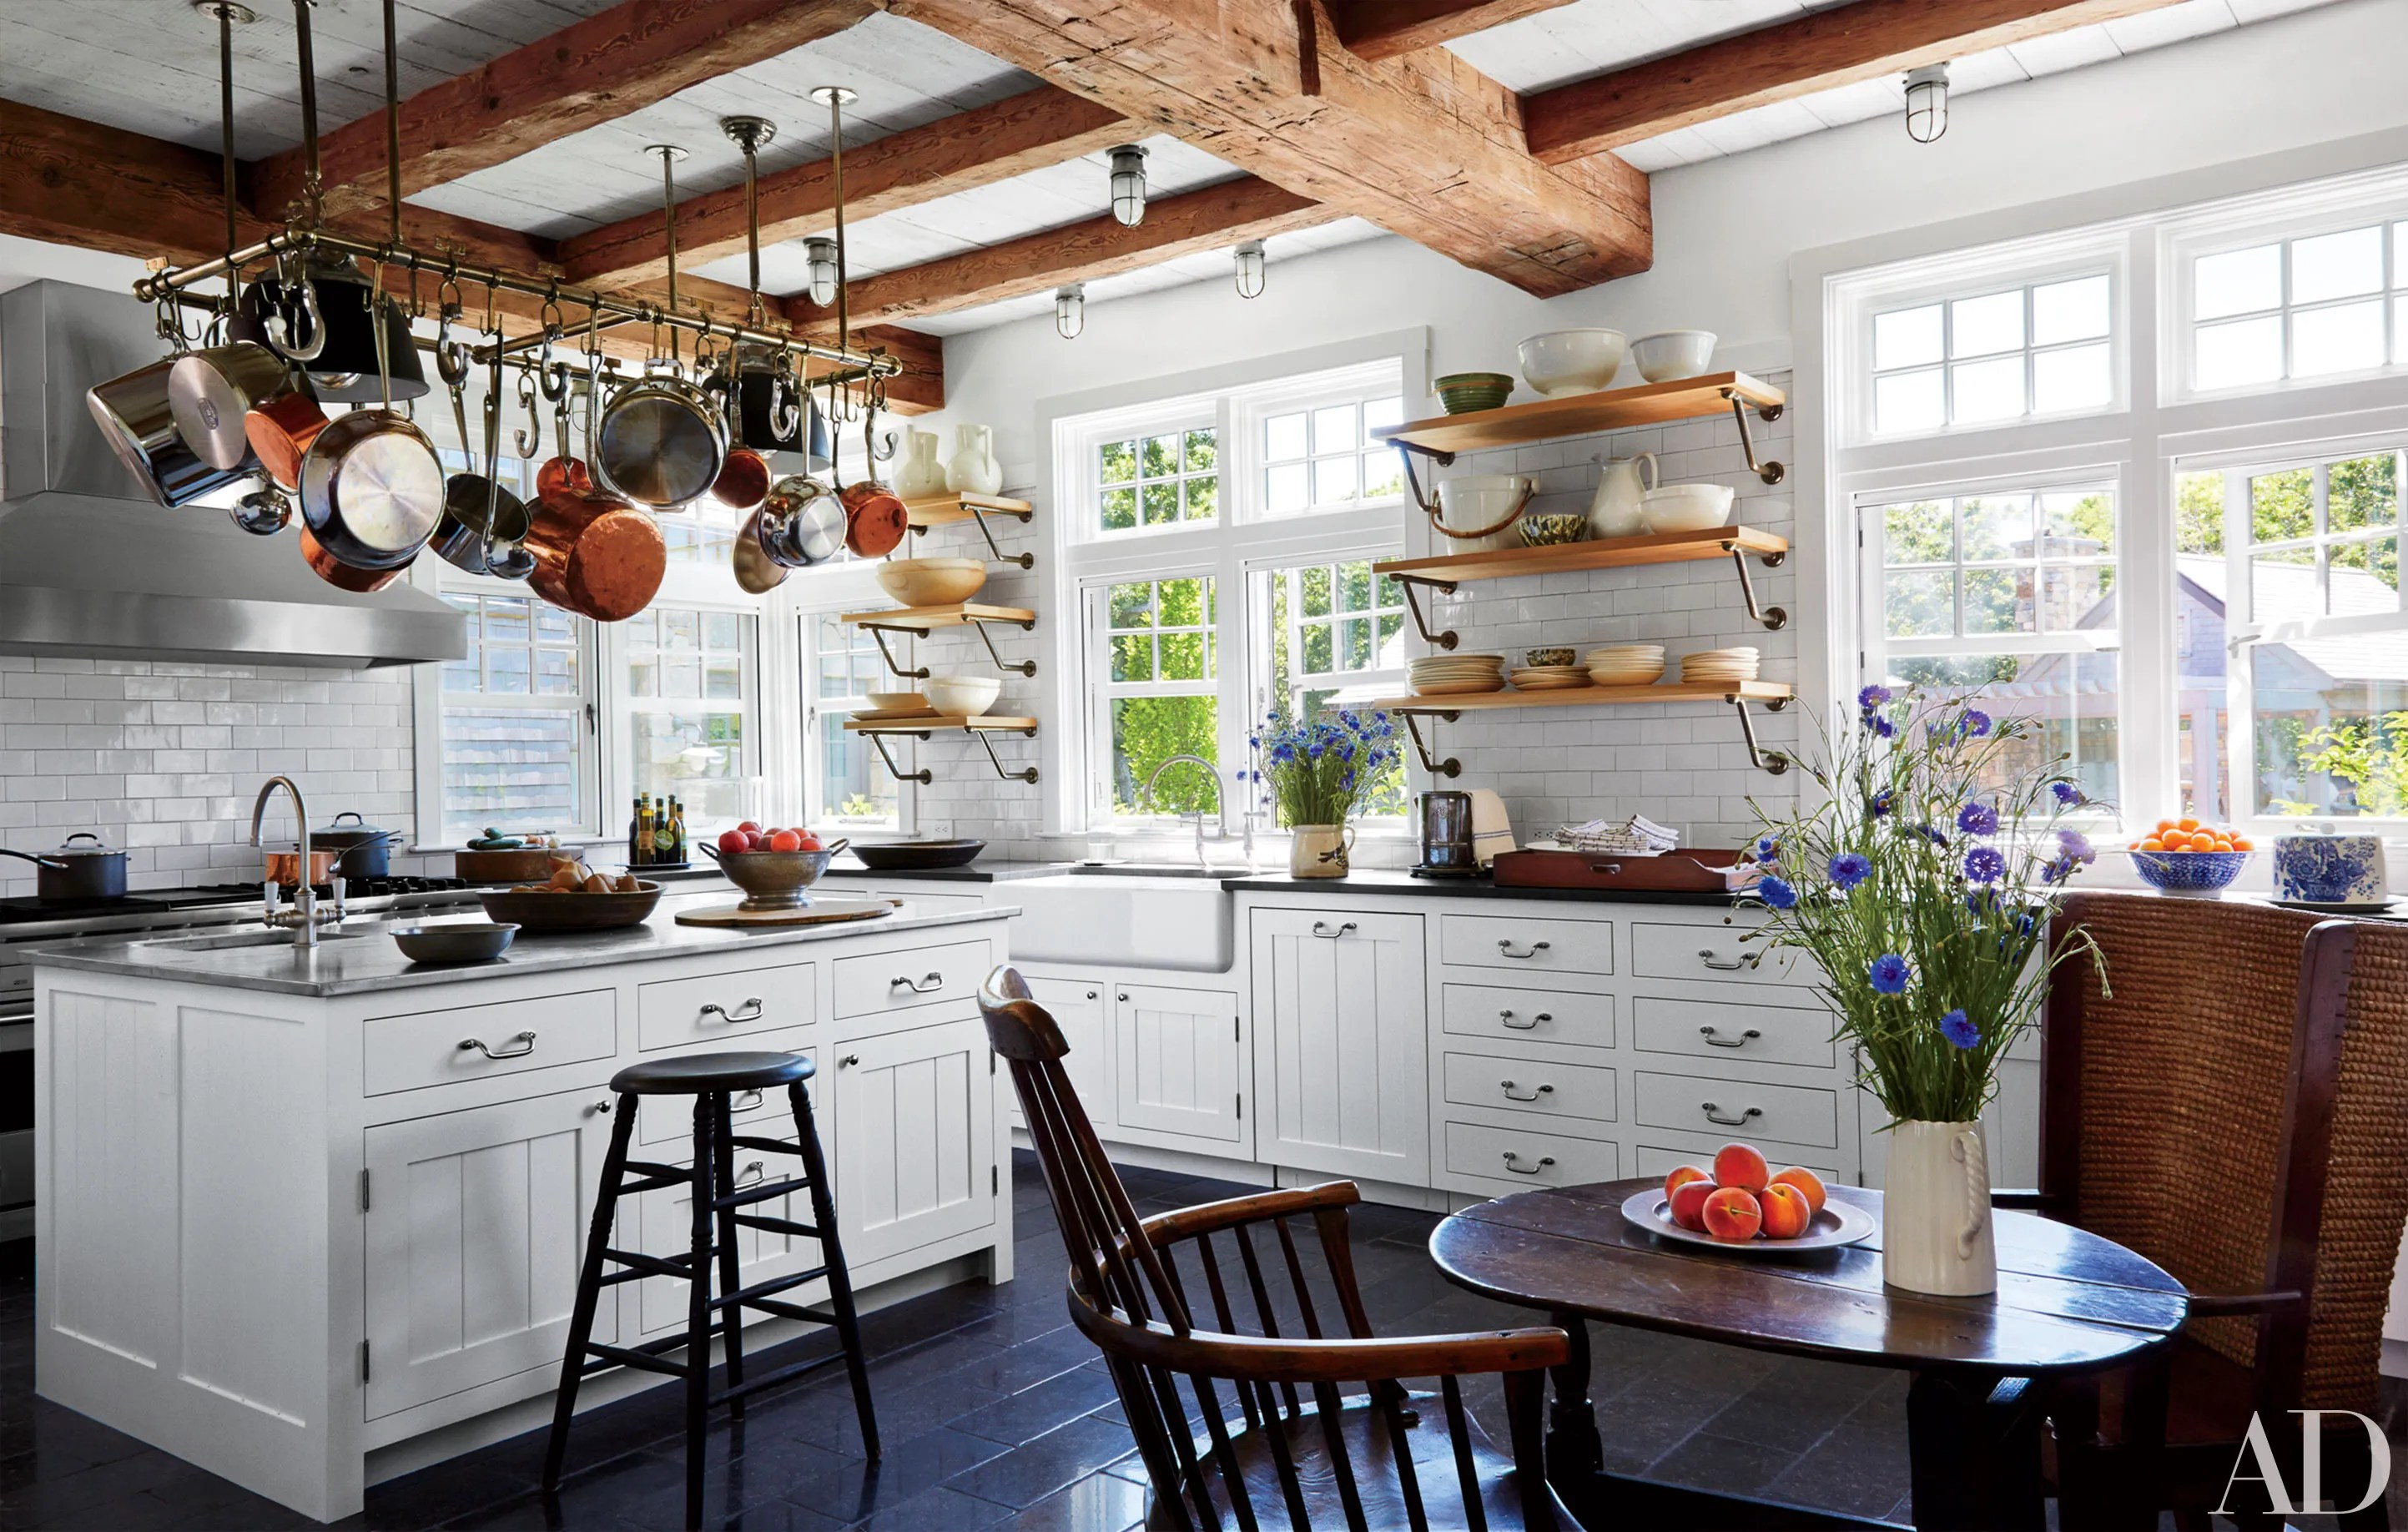 White Kitchen Cabinets Ideas and Inspiration Photos   Architectural     White Kitchen Cabinets Ideas and Inspiration Photos   Architectural Digest